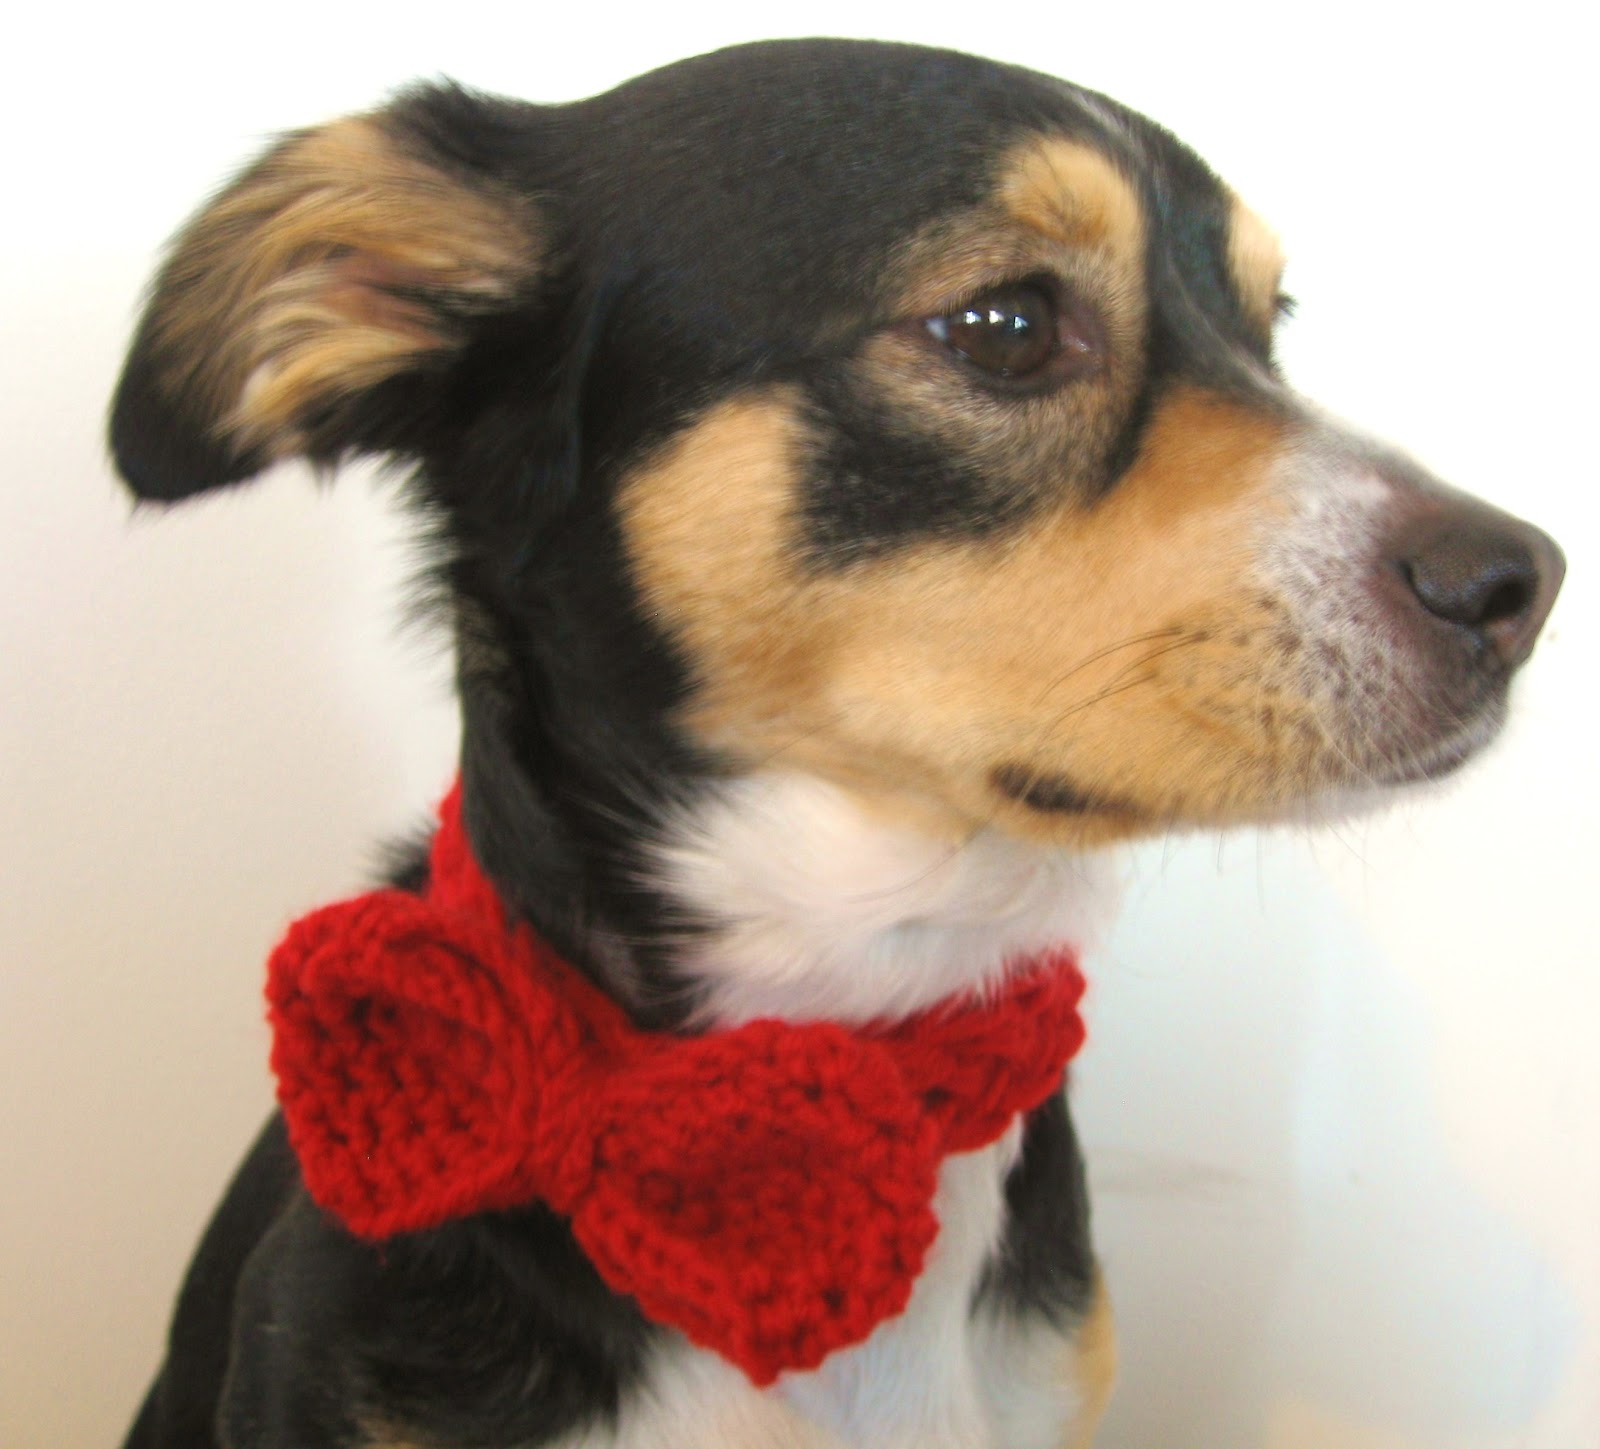 Megan e sass handknits free pattern crochet dog bow tie todays pattern is a crochet pattern not a knit pattern although its very easy to knit a dog bow tie as well doesnt my pup roscoe look dashing in bankloansurffo Choice Image